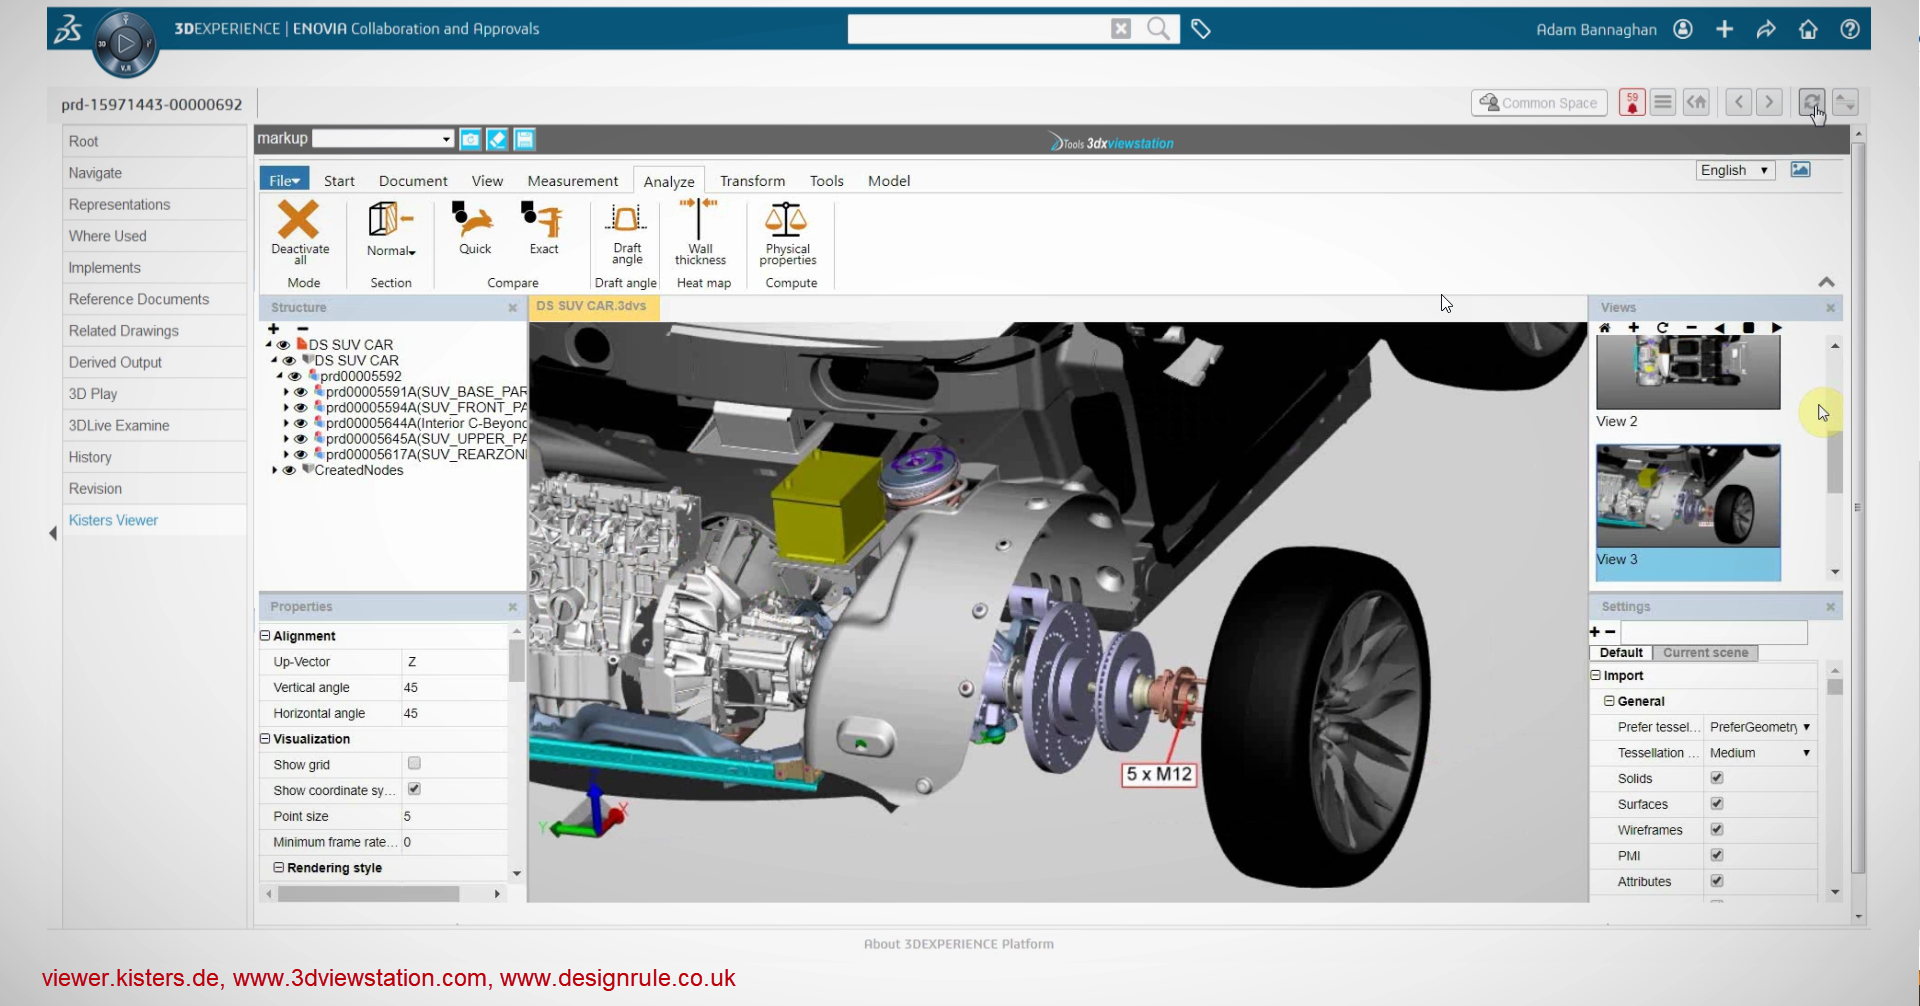 Catia viewer for 3DExperience and SmarTeam